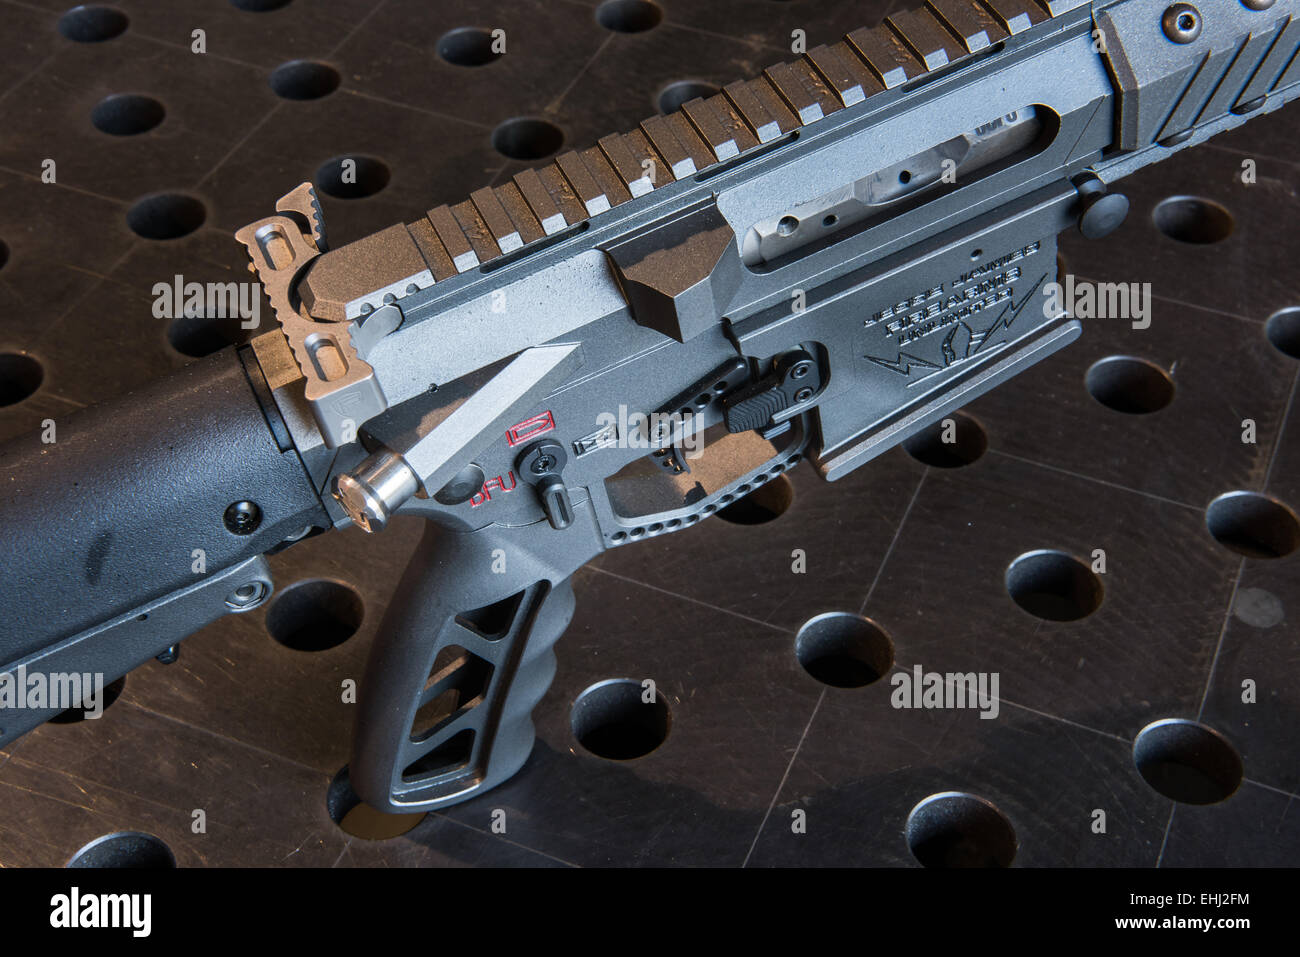 The grip and trigger of an assault rifle manufactured by Jesse James Firearms Unlimited of Dripping Springs, Texas, Stock Photo